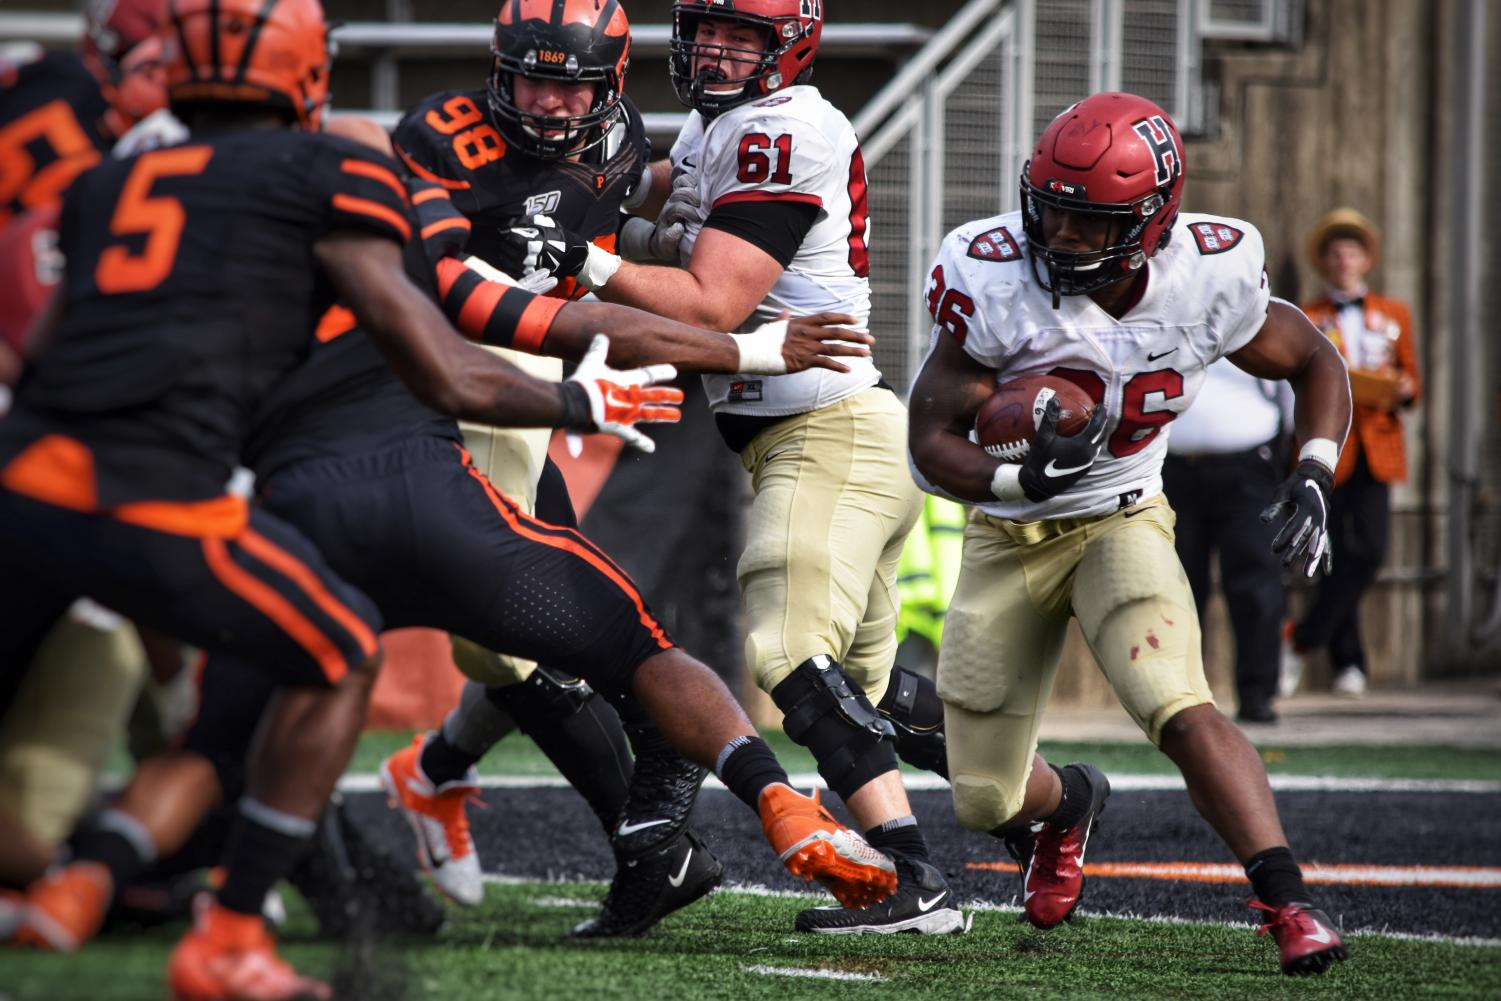 Harvard running back DeMarkes Stradford makes a move before carrying the ball past blockers on the line of scrimmage.